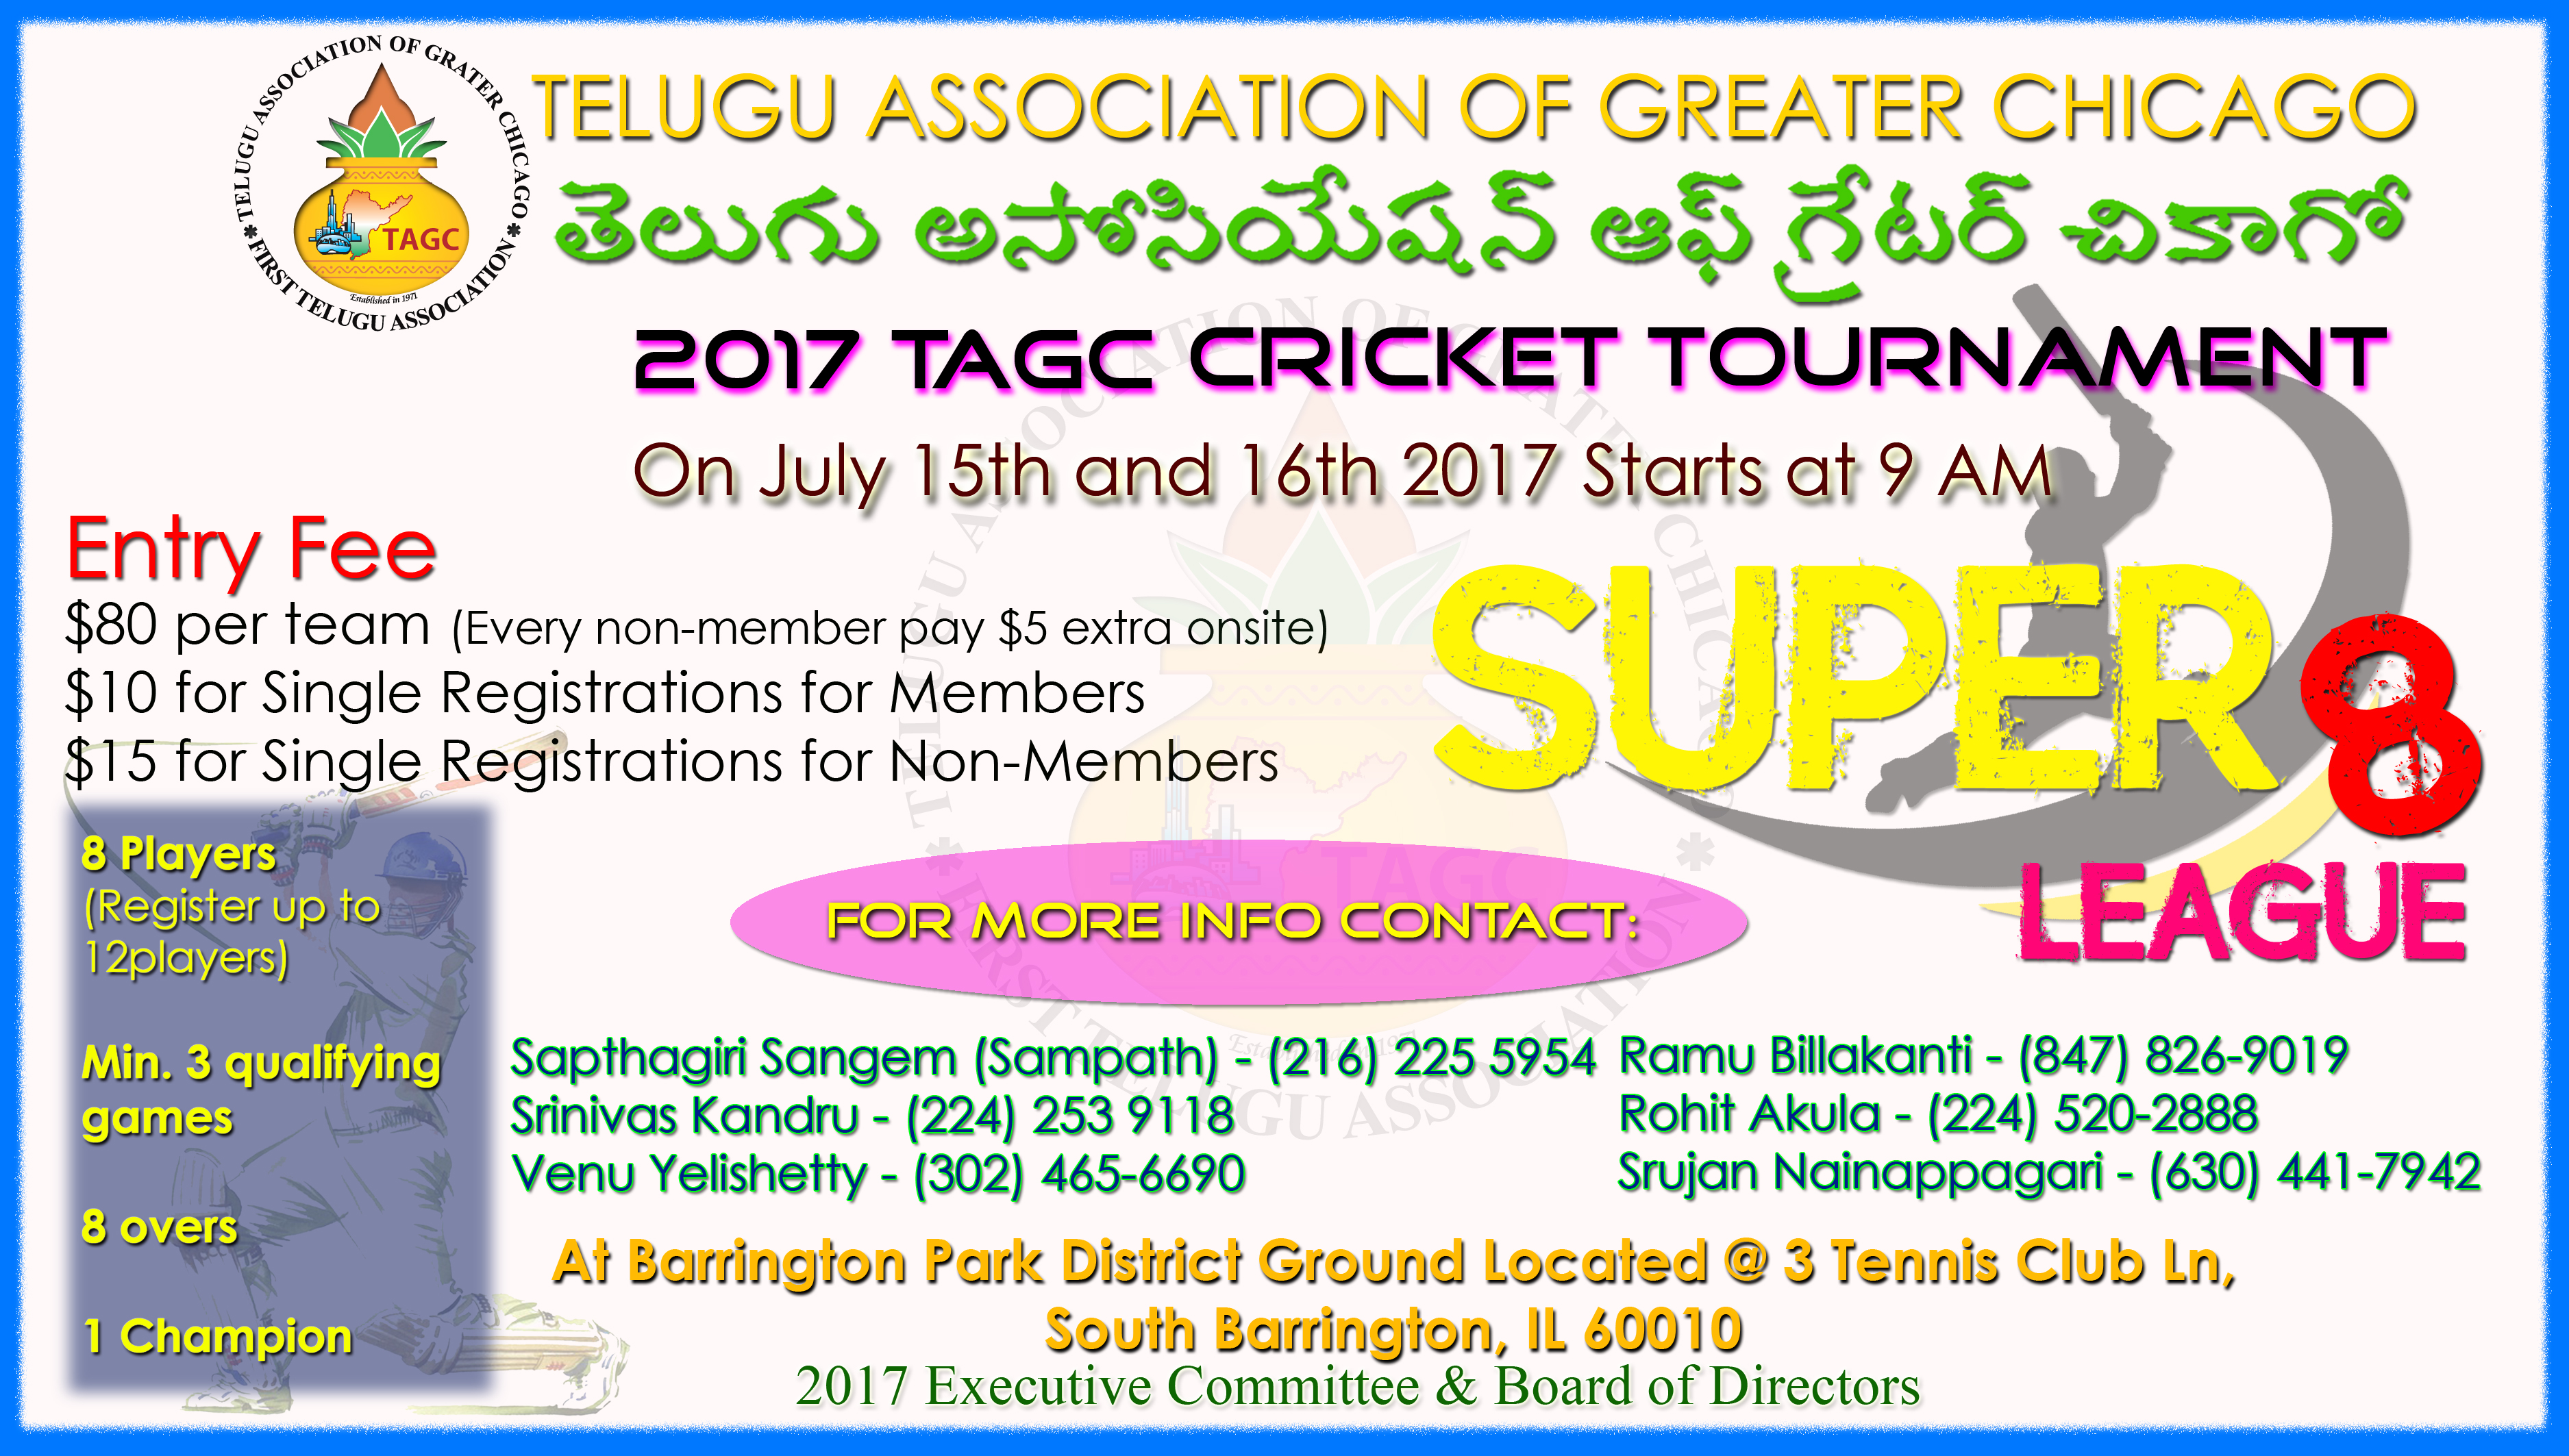 2017 TAGC Cricket Tournament